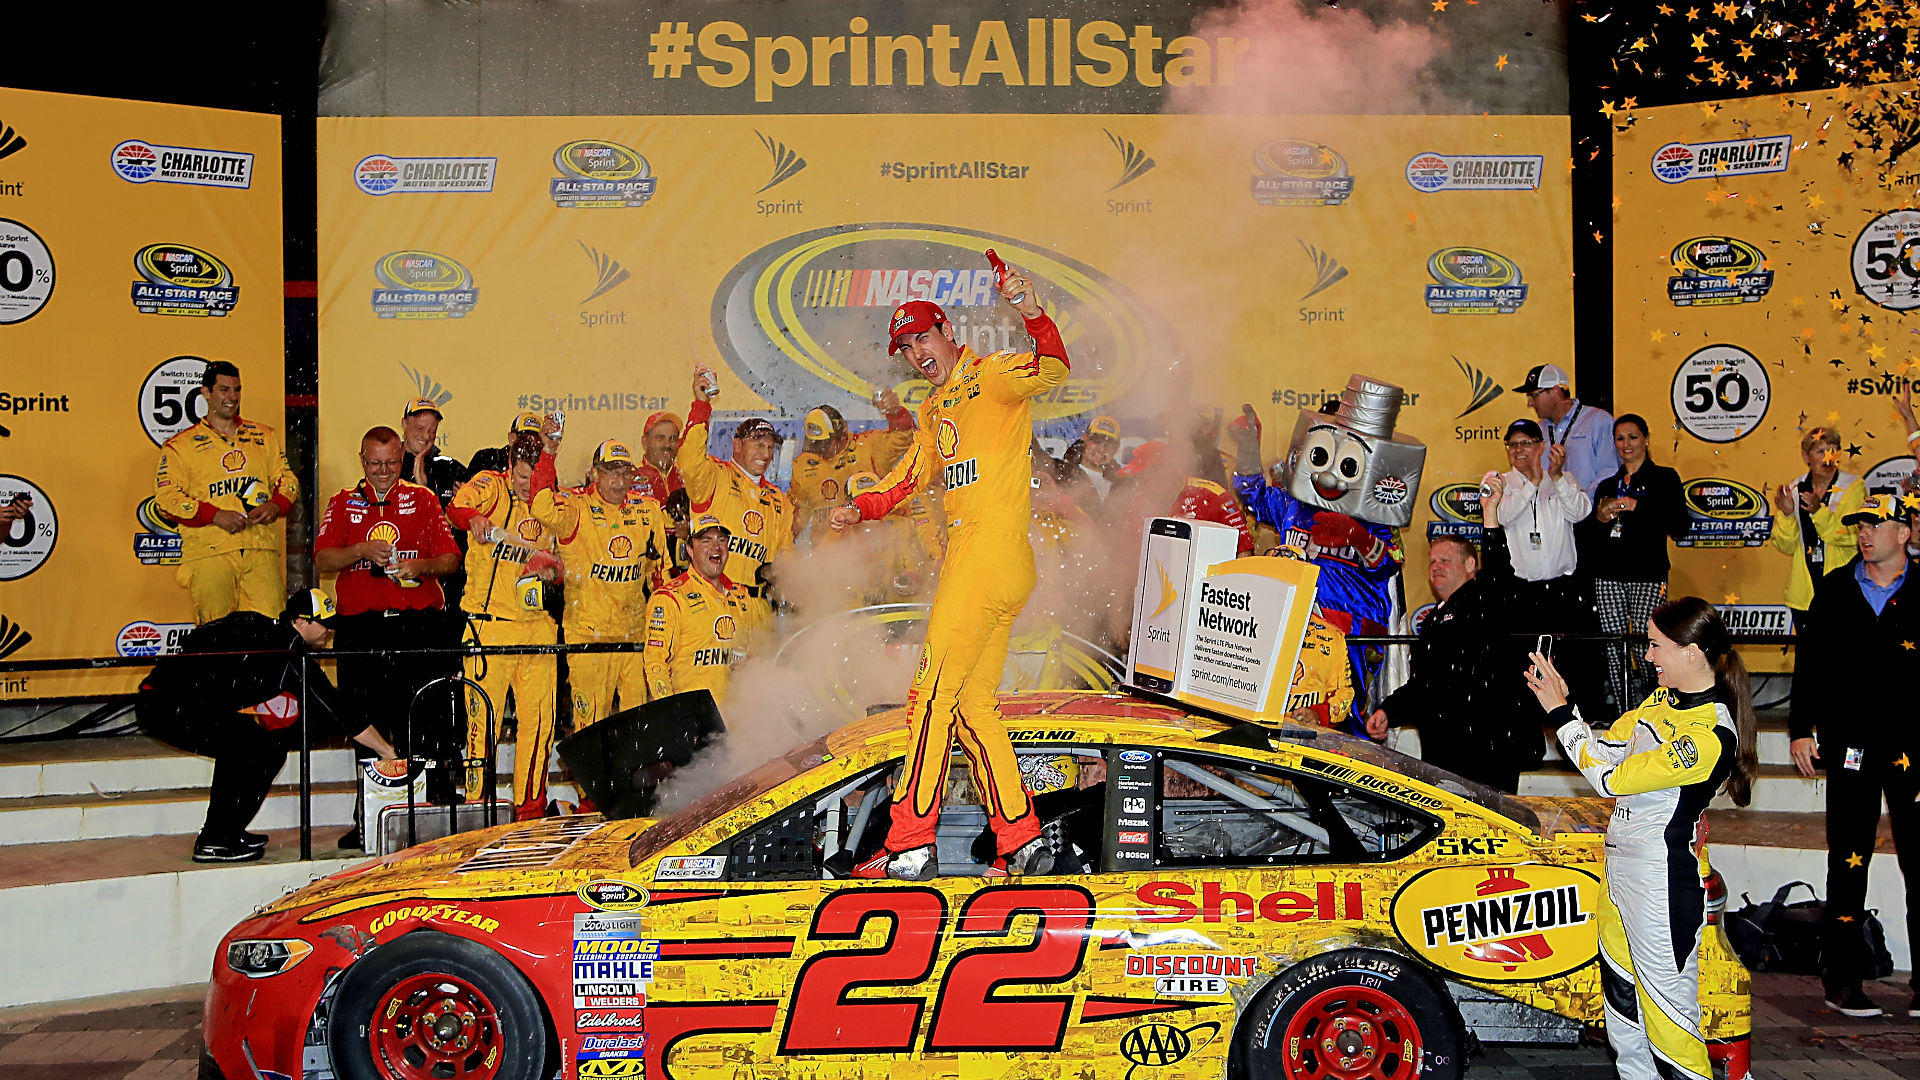 joey-logano-all-star-race-getty-ftrjpg_hhwt0qk6xumk1fytn2y3xgqzu